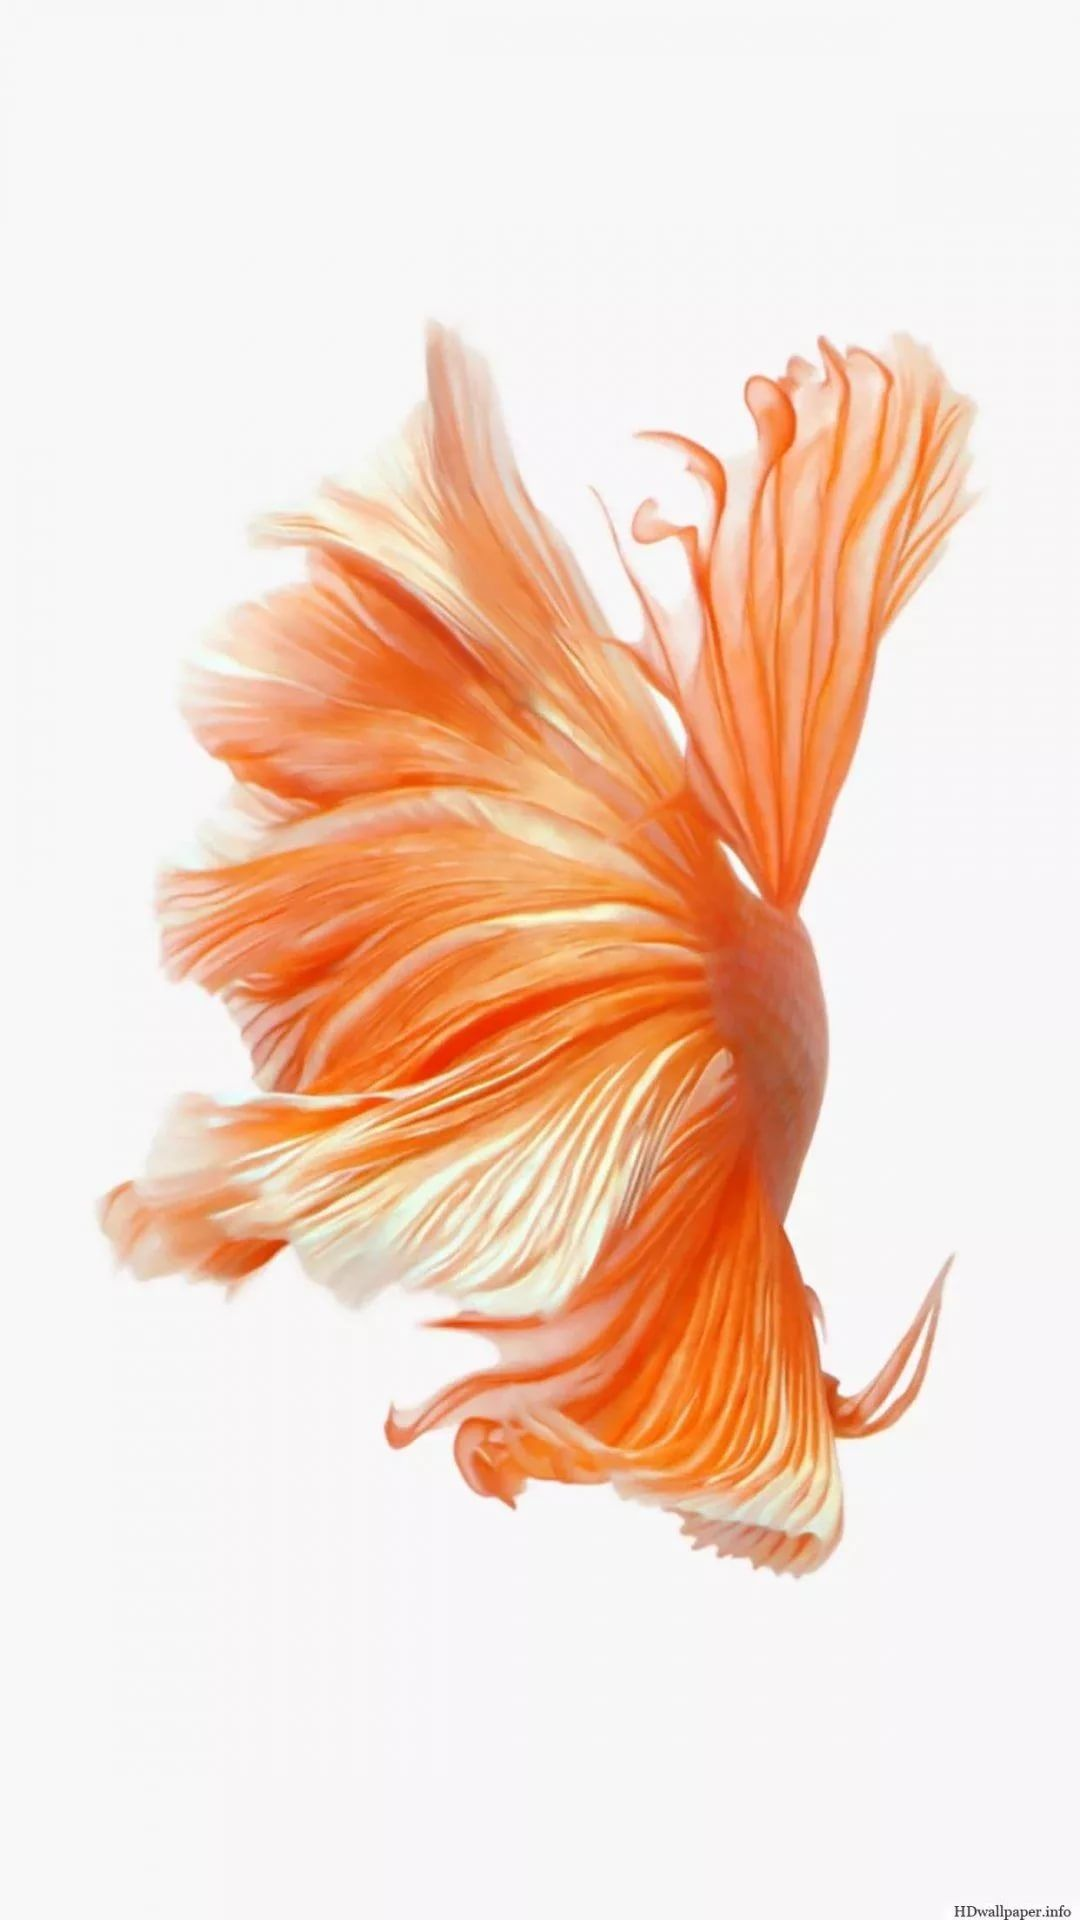 Betta Fish wallpaper for android